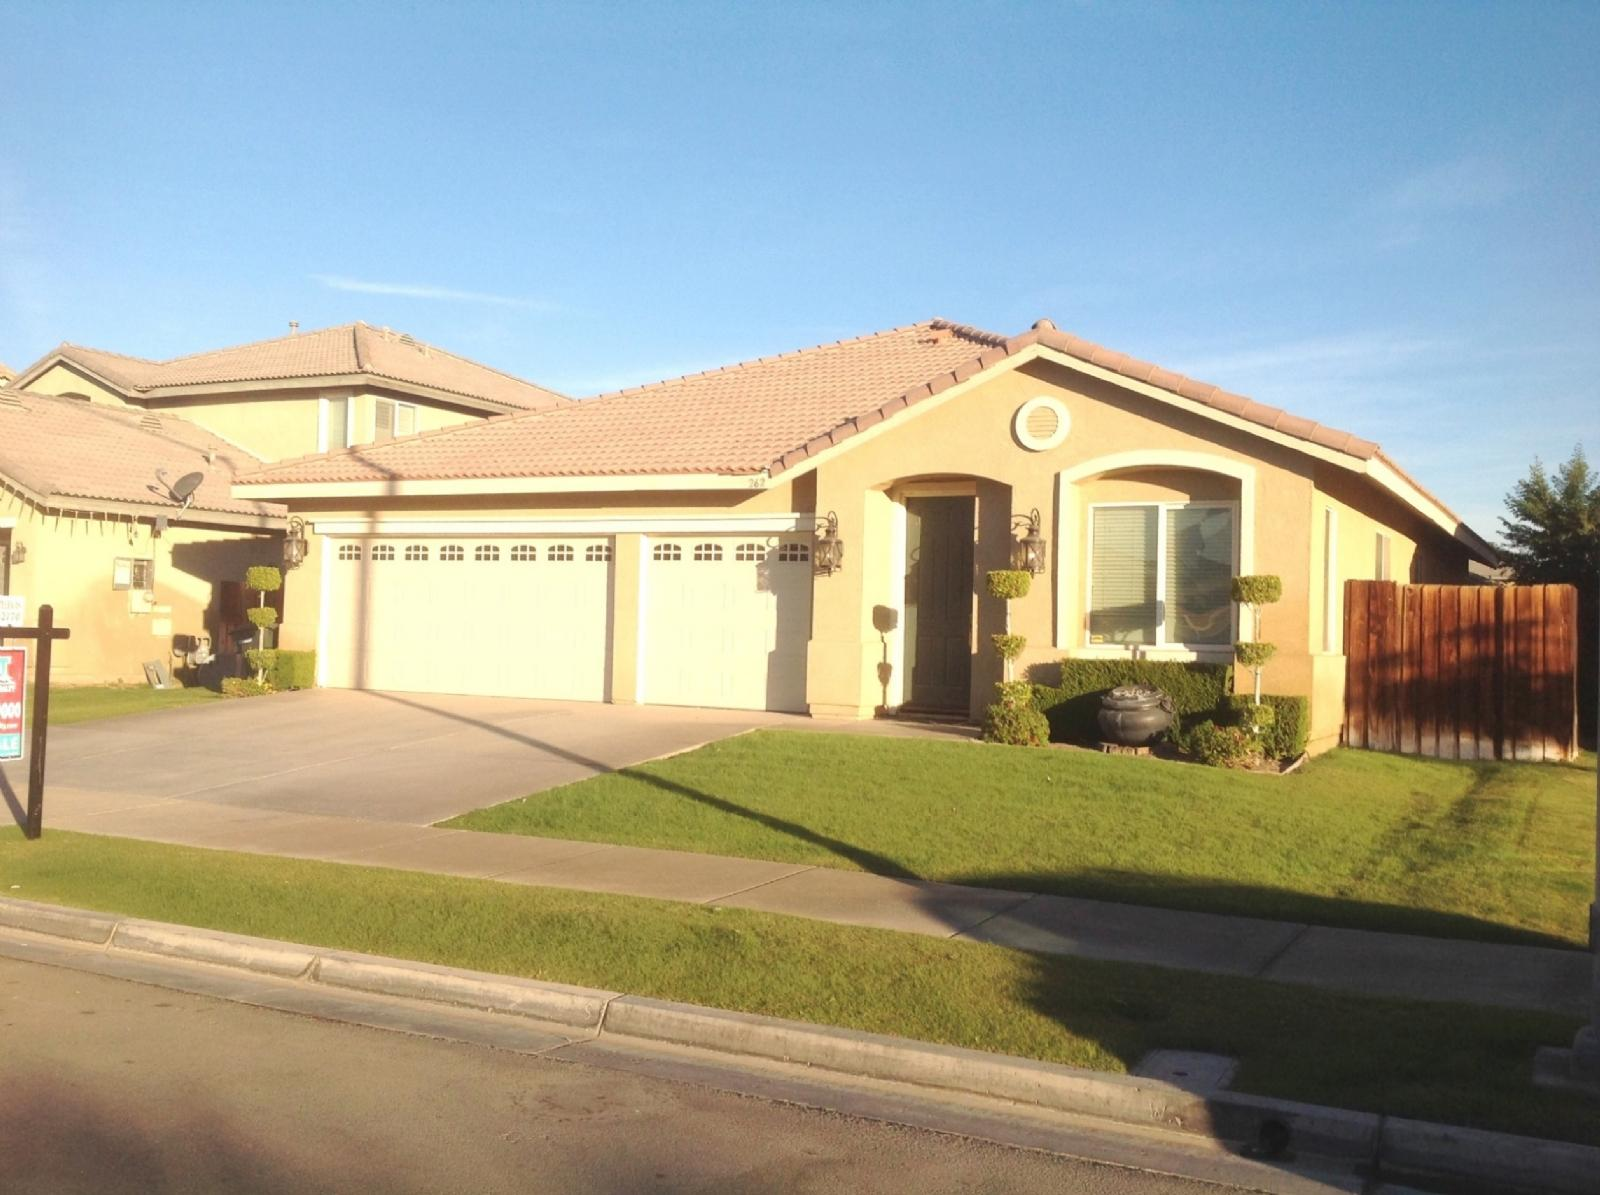 Houses for sale in el centro ca